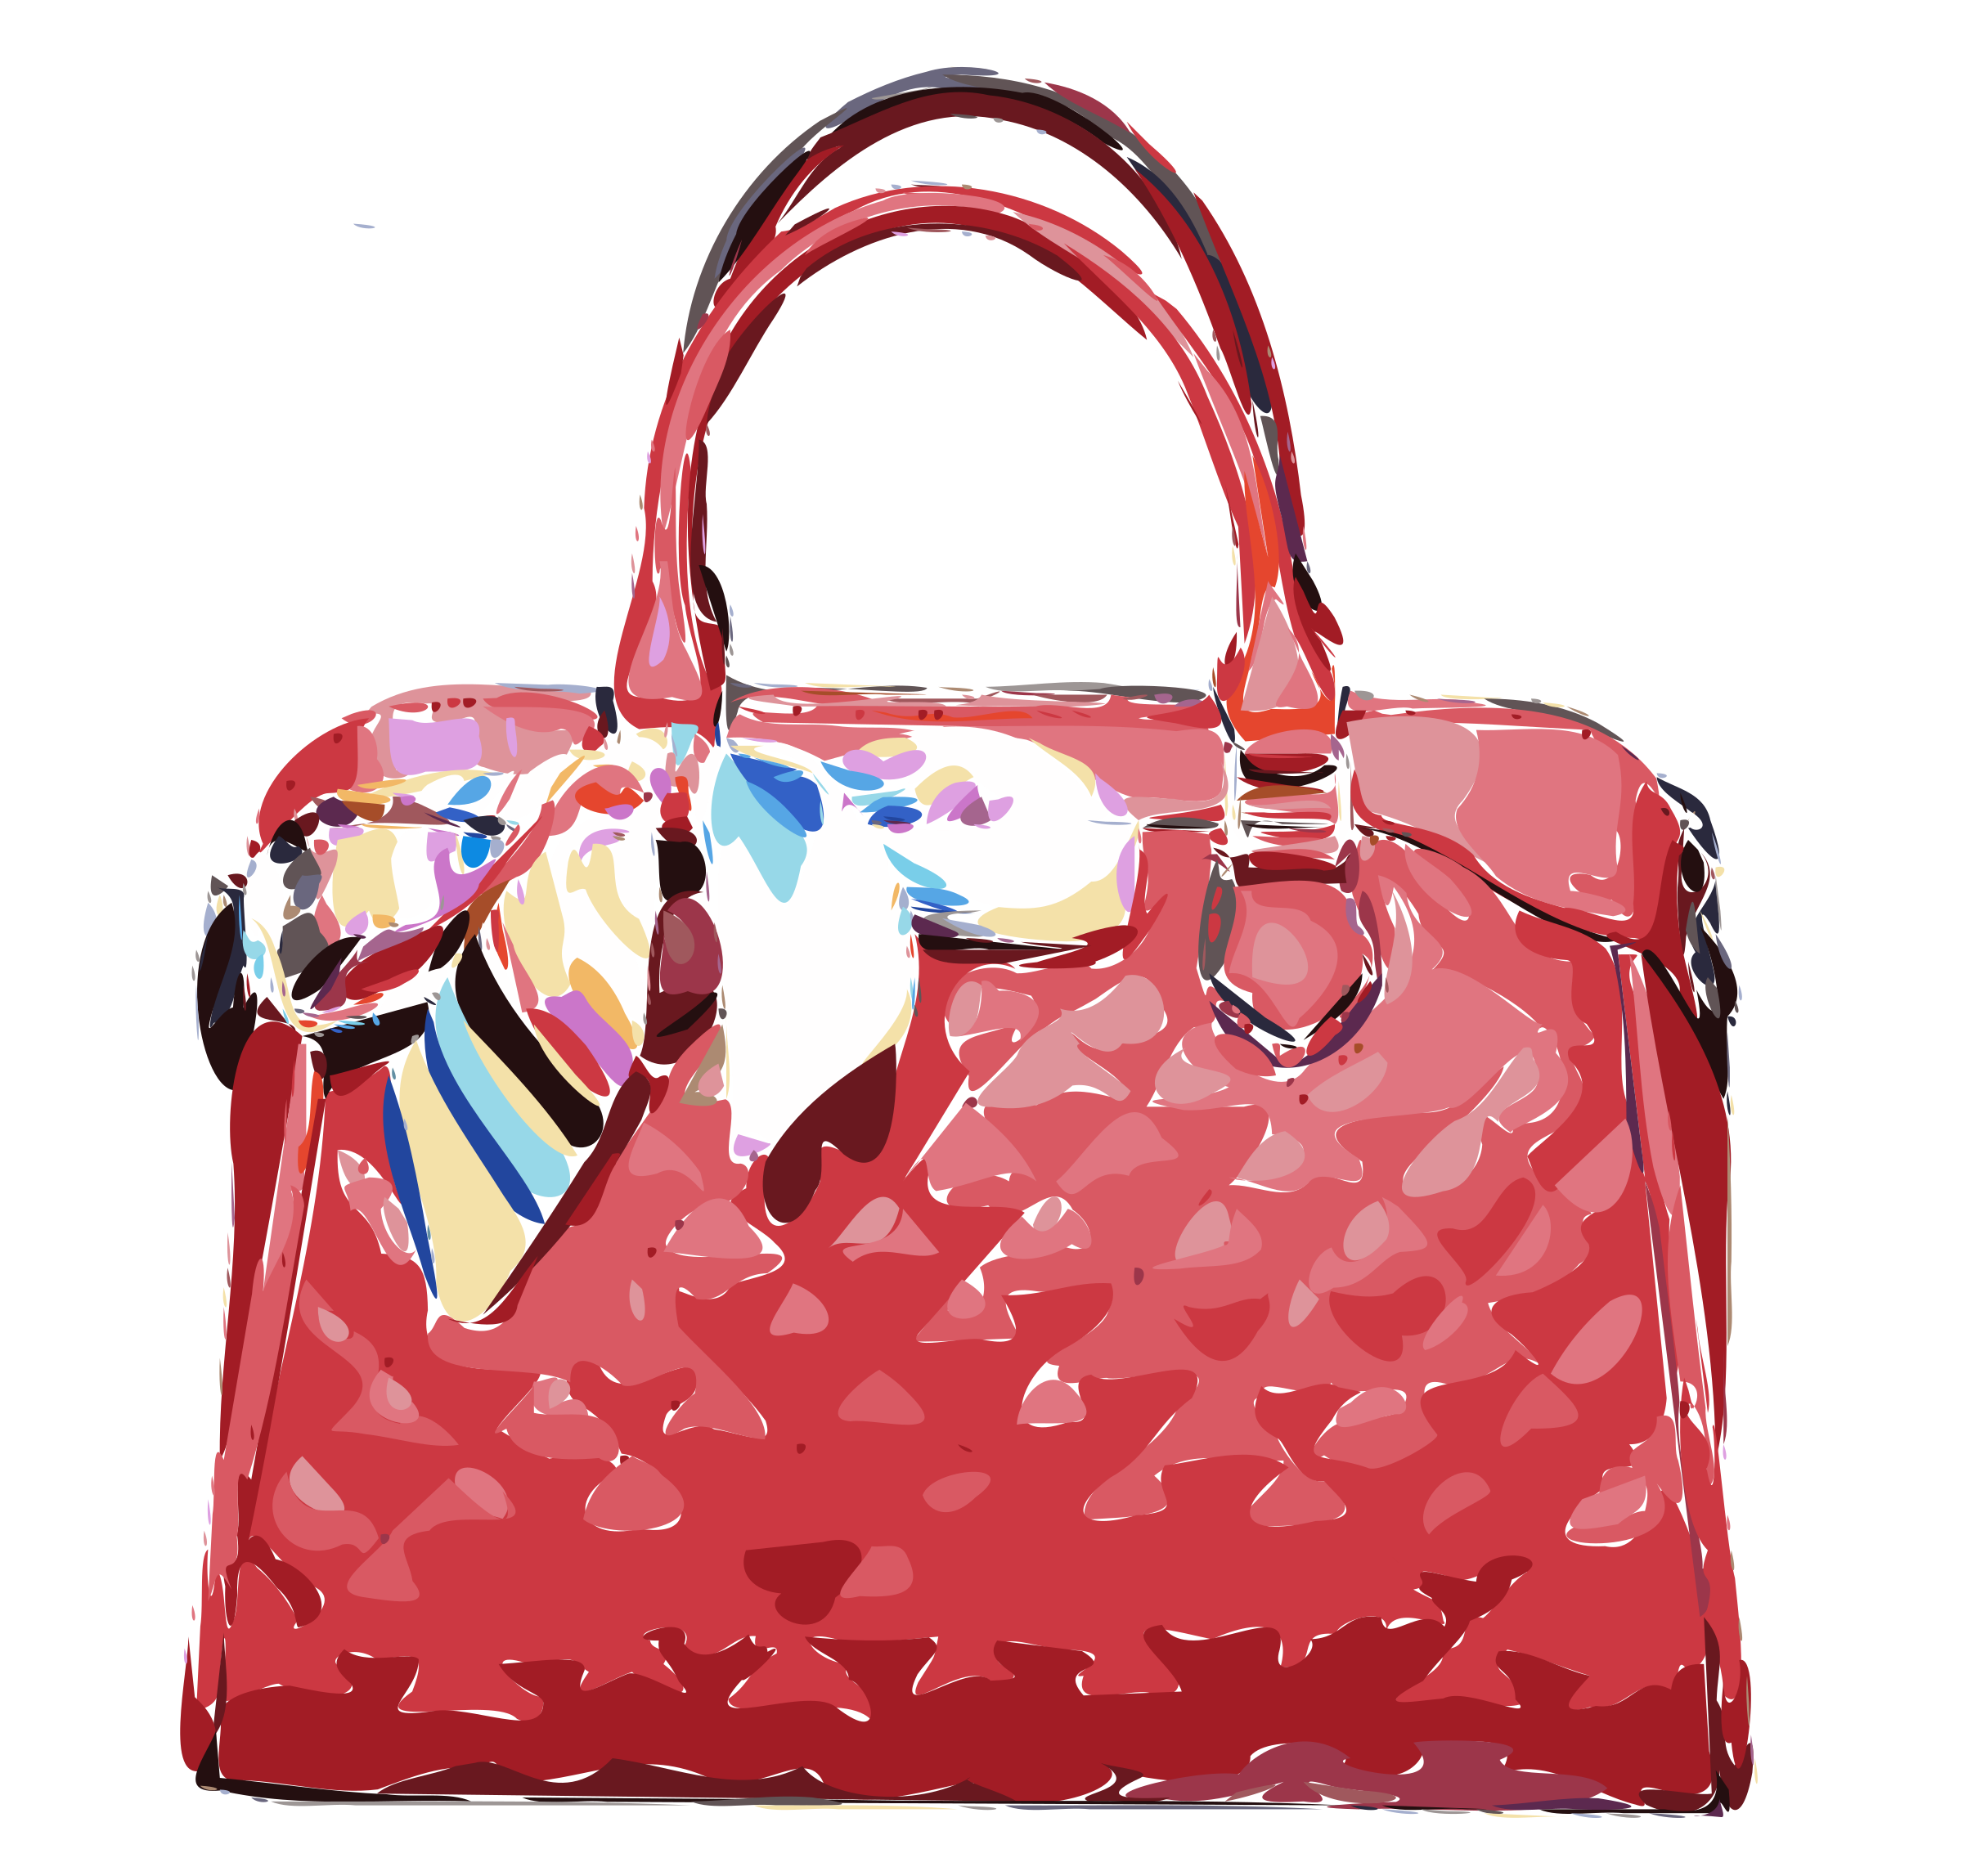 Red Leather Bag with Ribbon by rejon